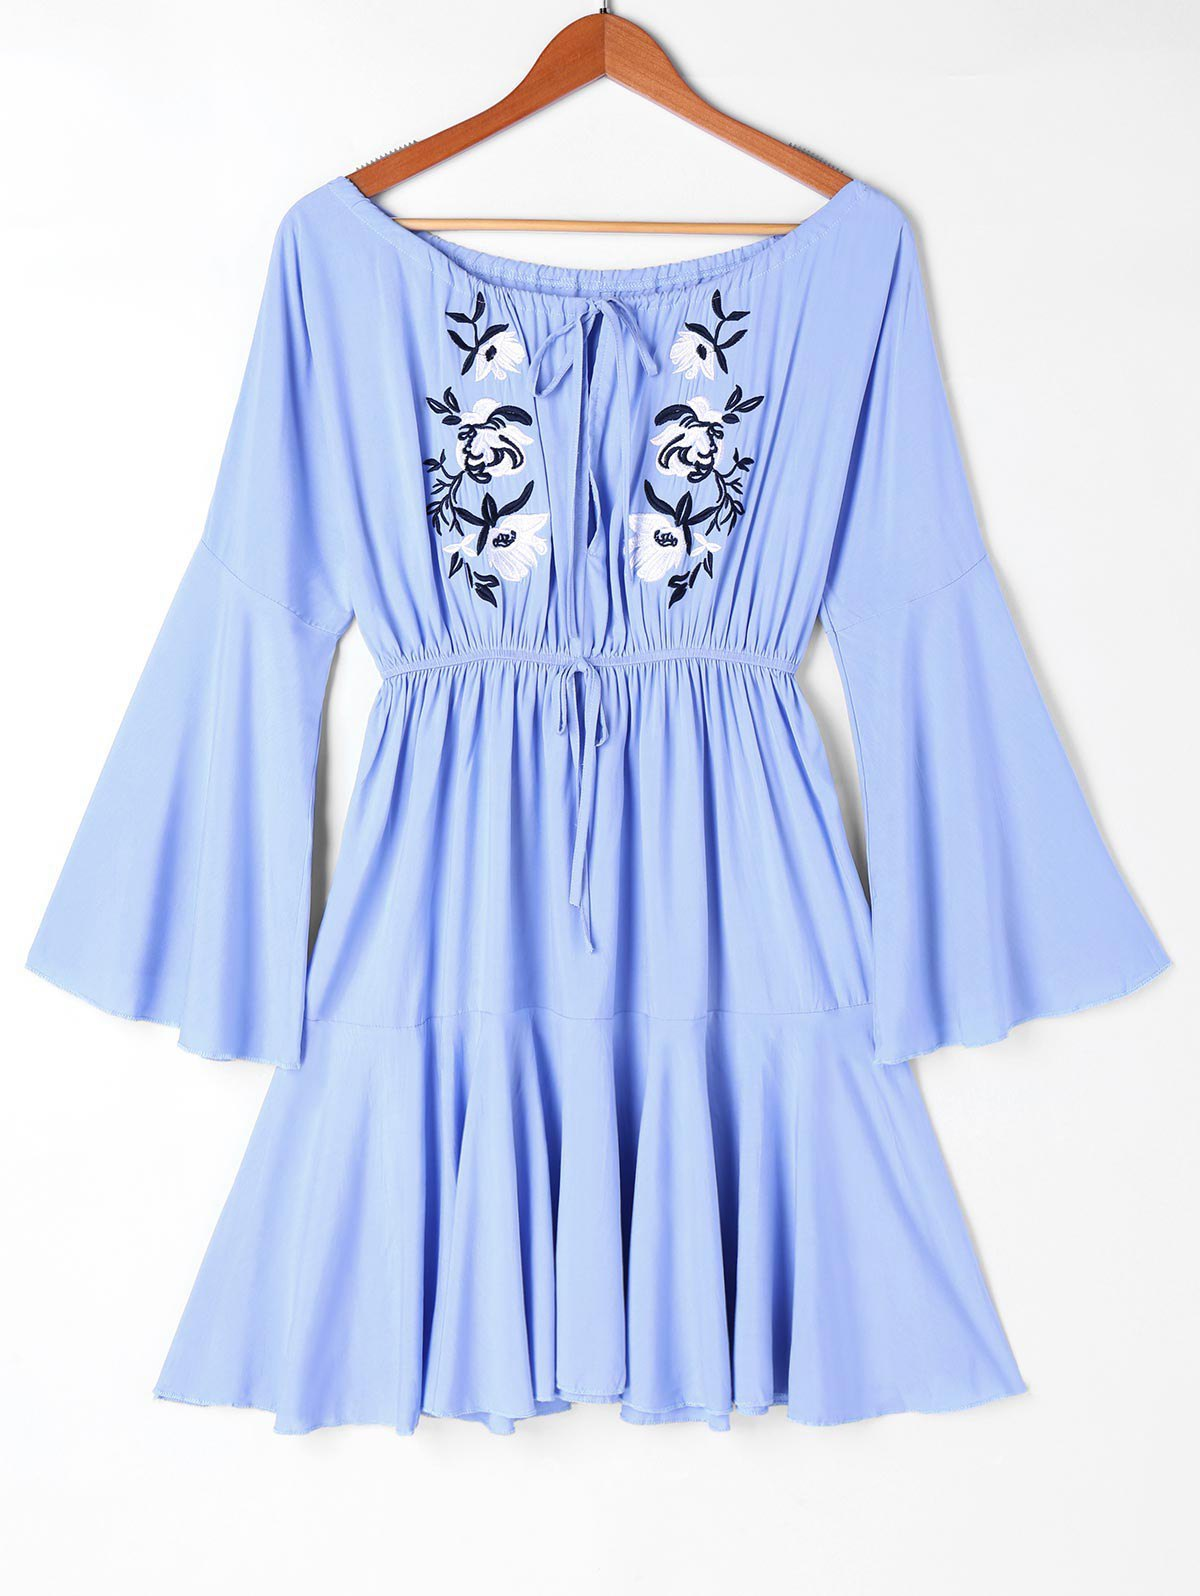 Off Shoulder Embroidery Casual Dress 244688204